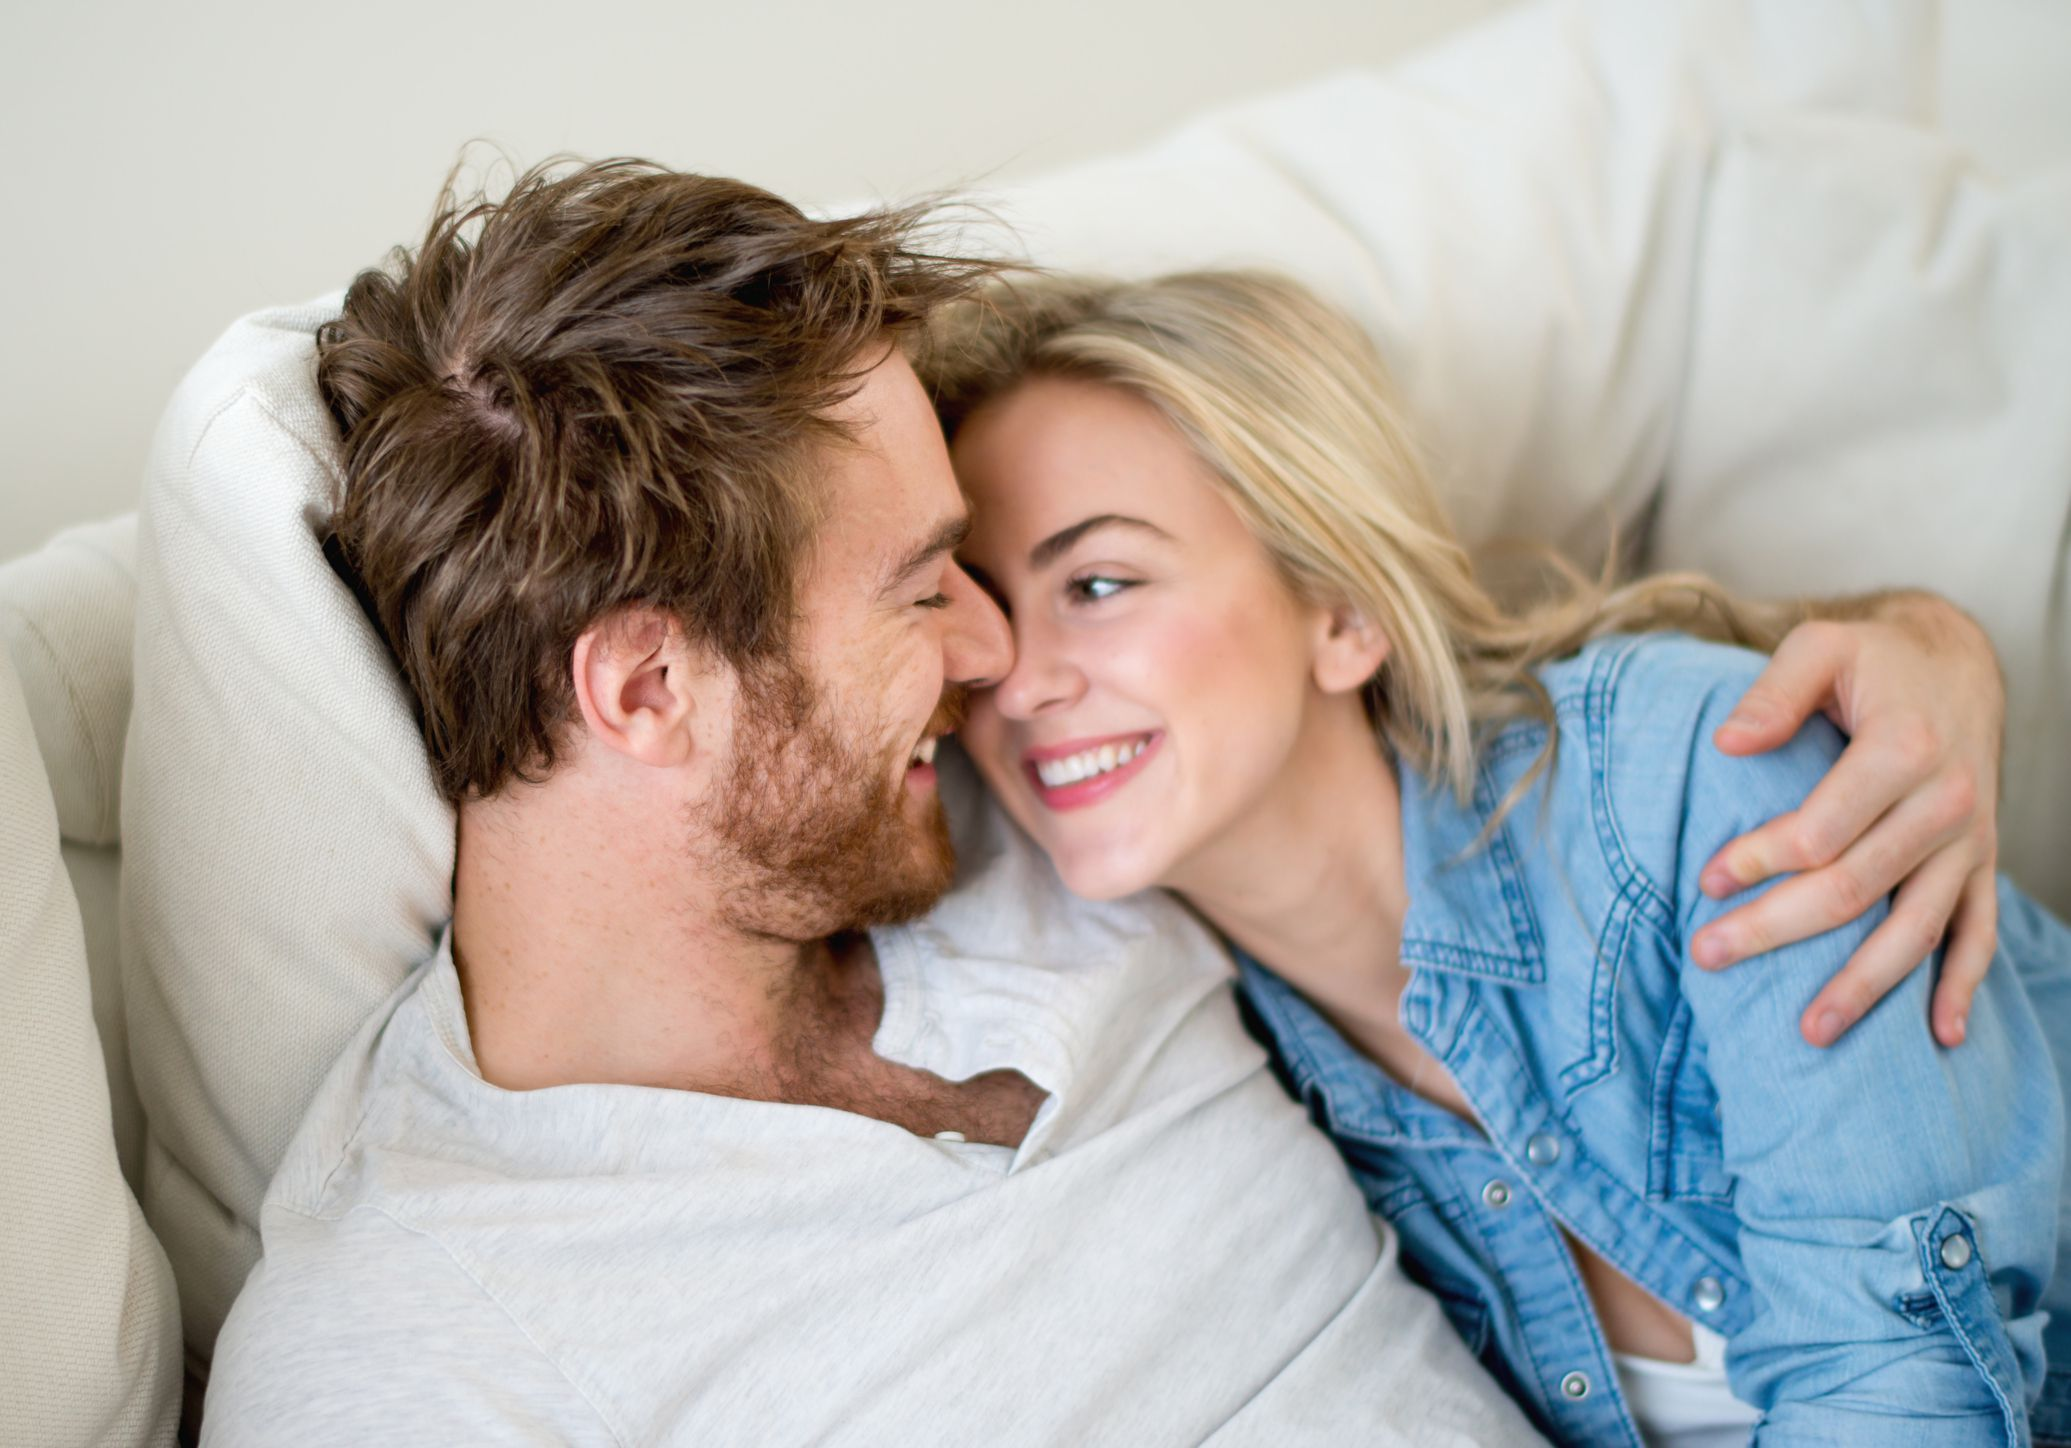 Can Casual Sex Become a Serious Relationship?